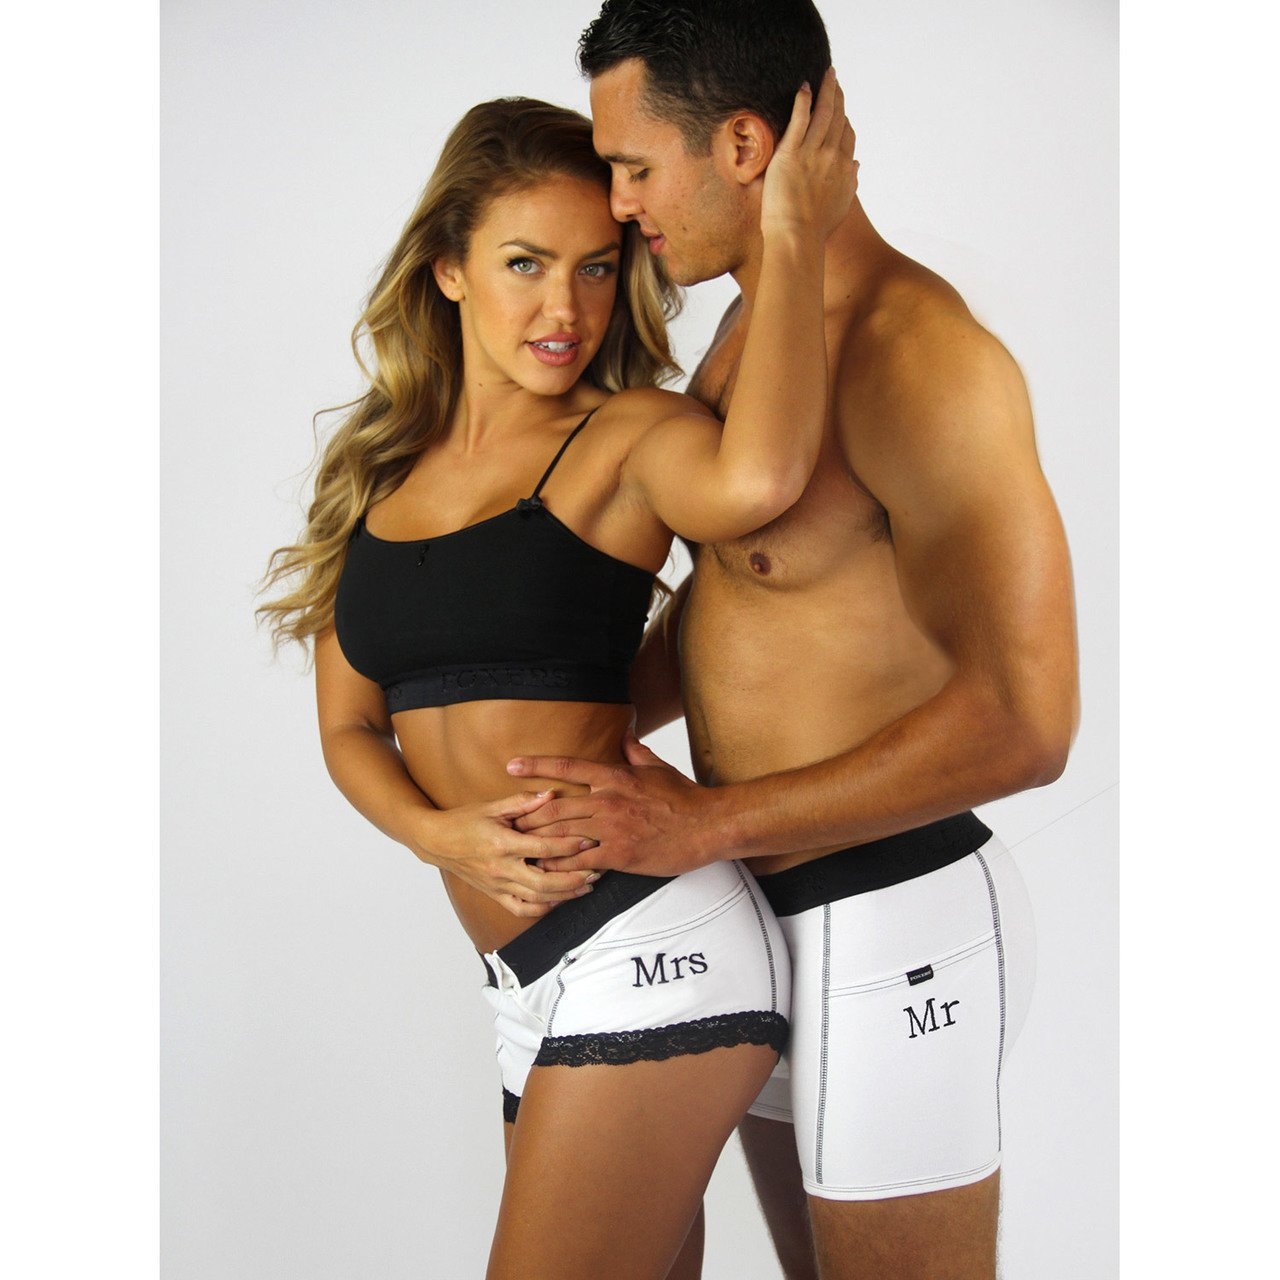 Foxers MR Monogrammed Soft White Cotton Mens Boxer Brief Underwear with Pockets S-XXL